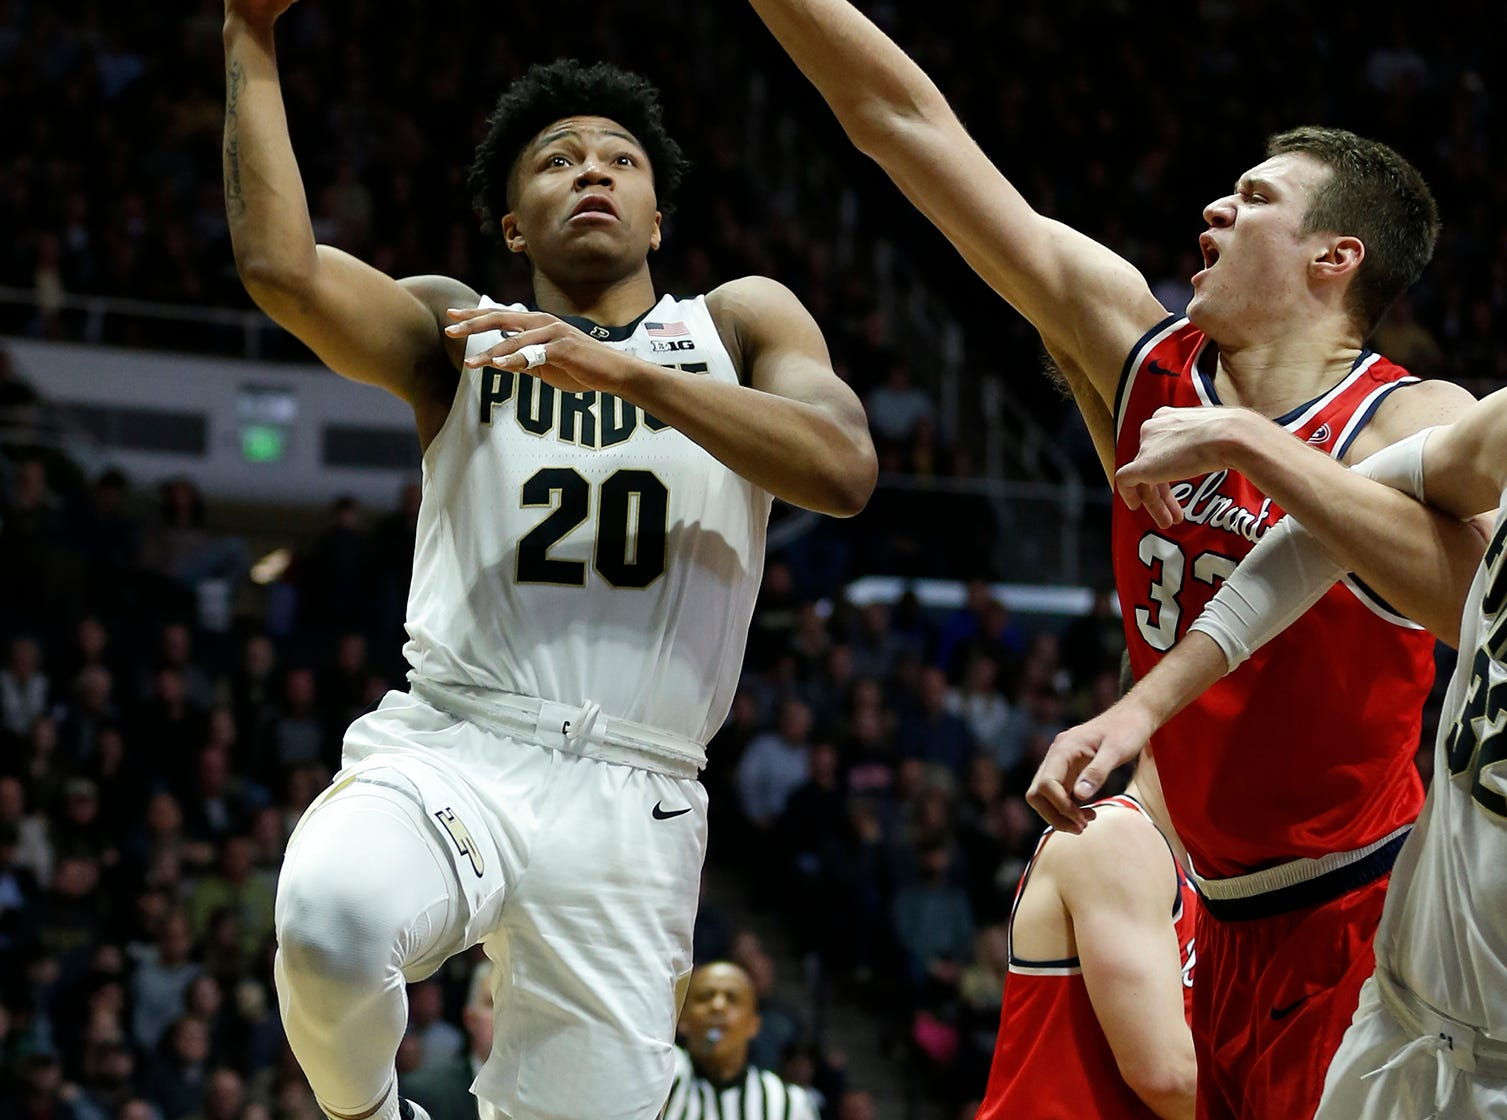 Nojel Eastern of Purdue with a drive to the basket for a shot against Nick Muszynski of Belmont Saturday, December 29, 2018, at Mackey Arena. Purdue defeated Belmont 73-62.